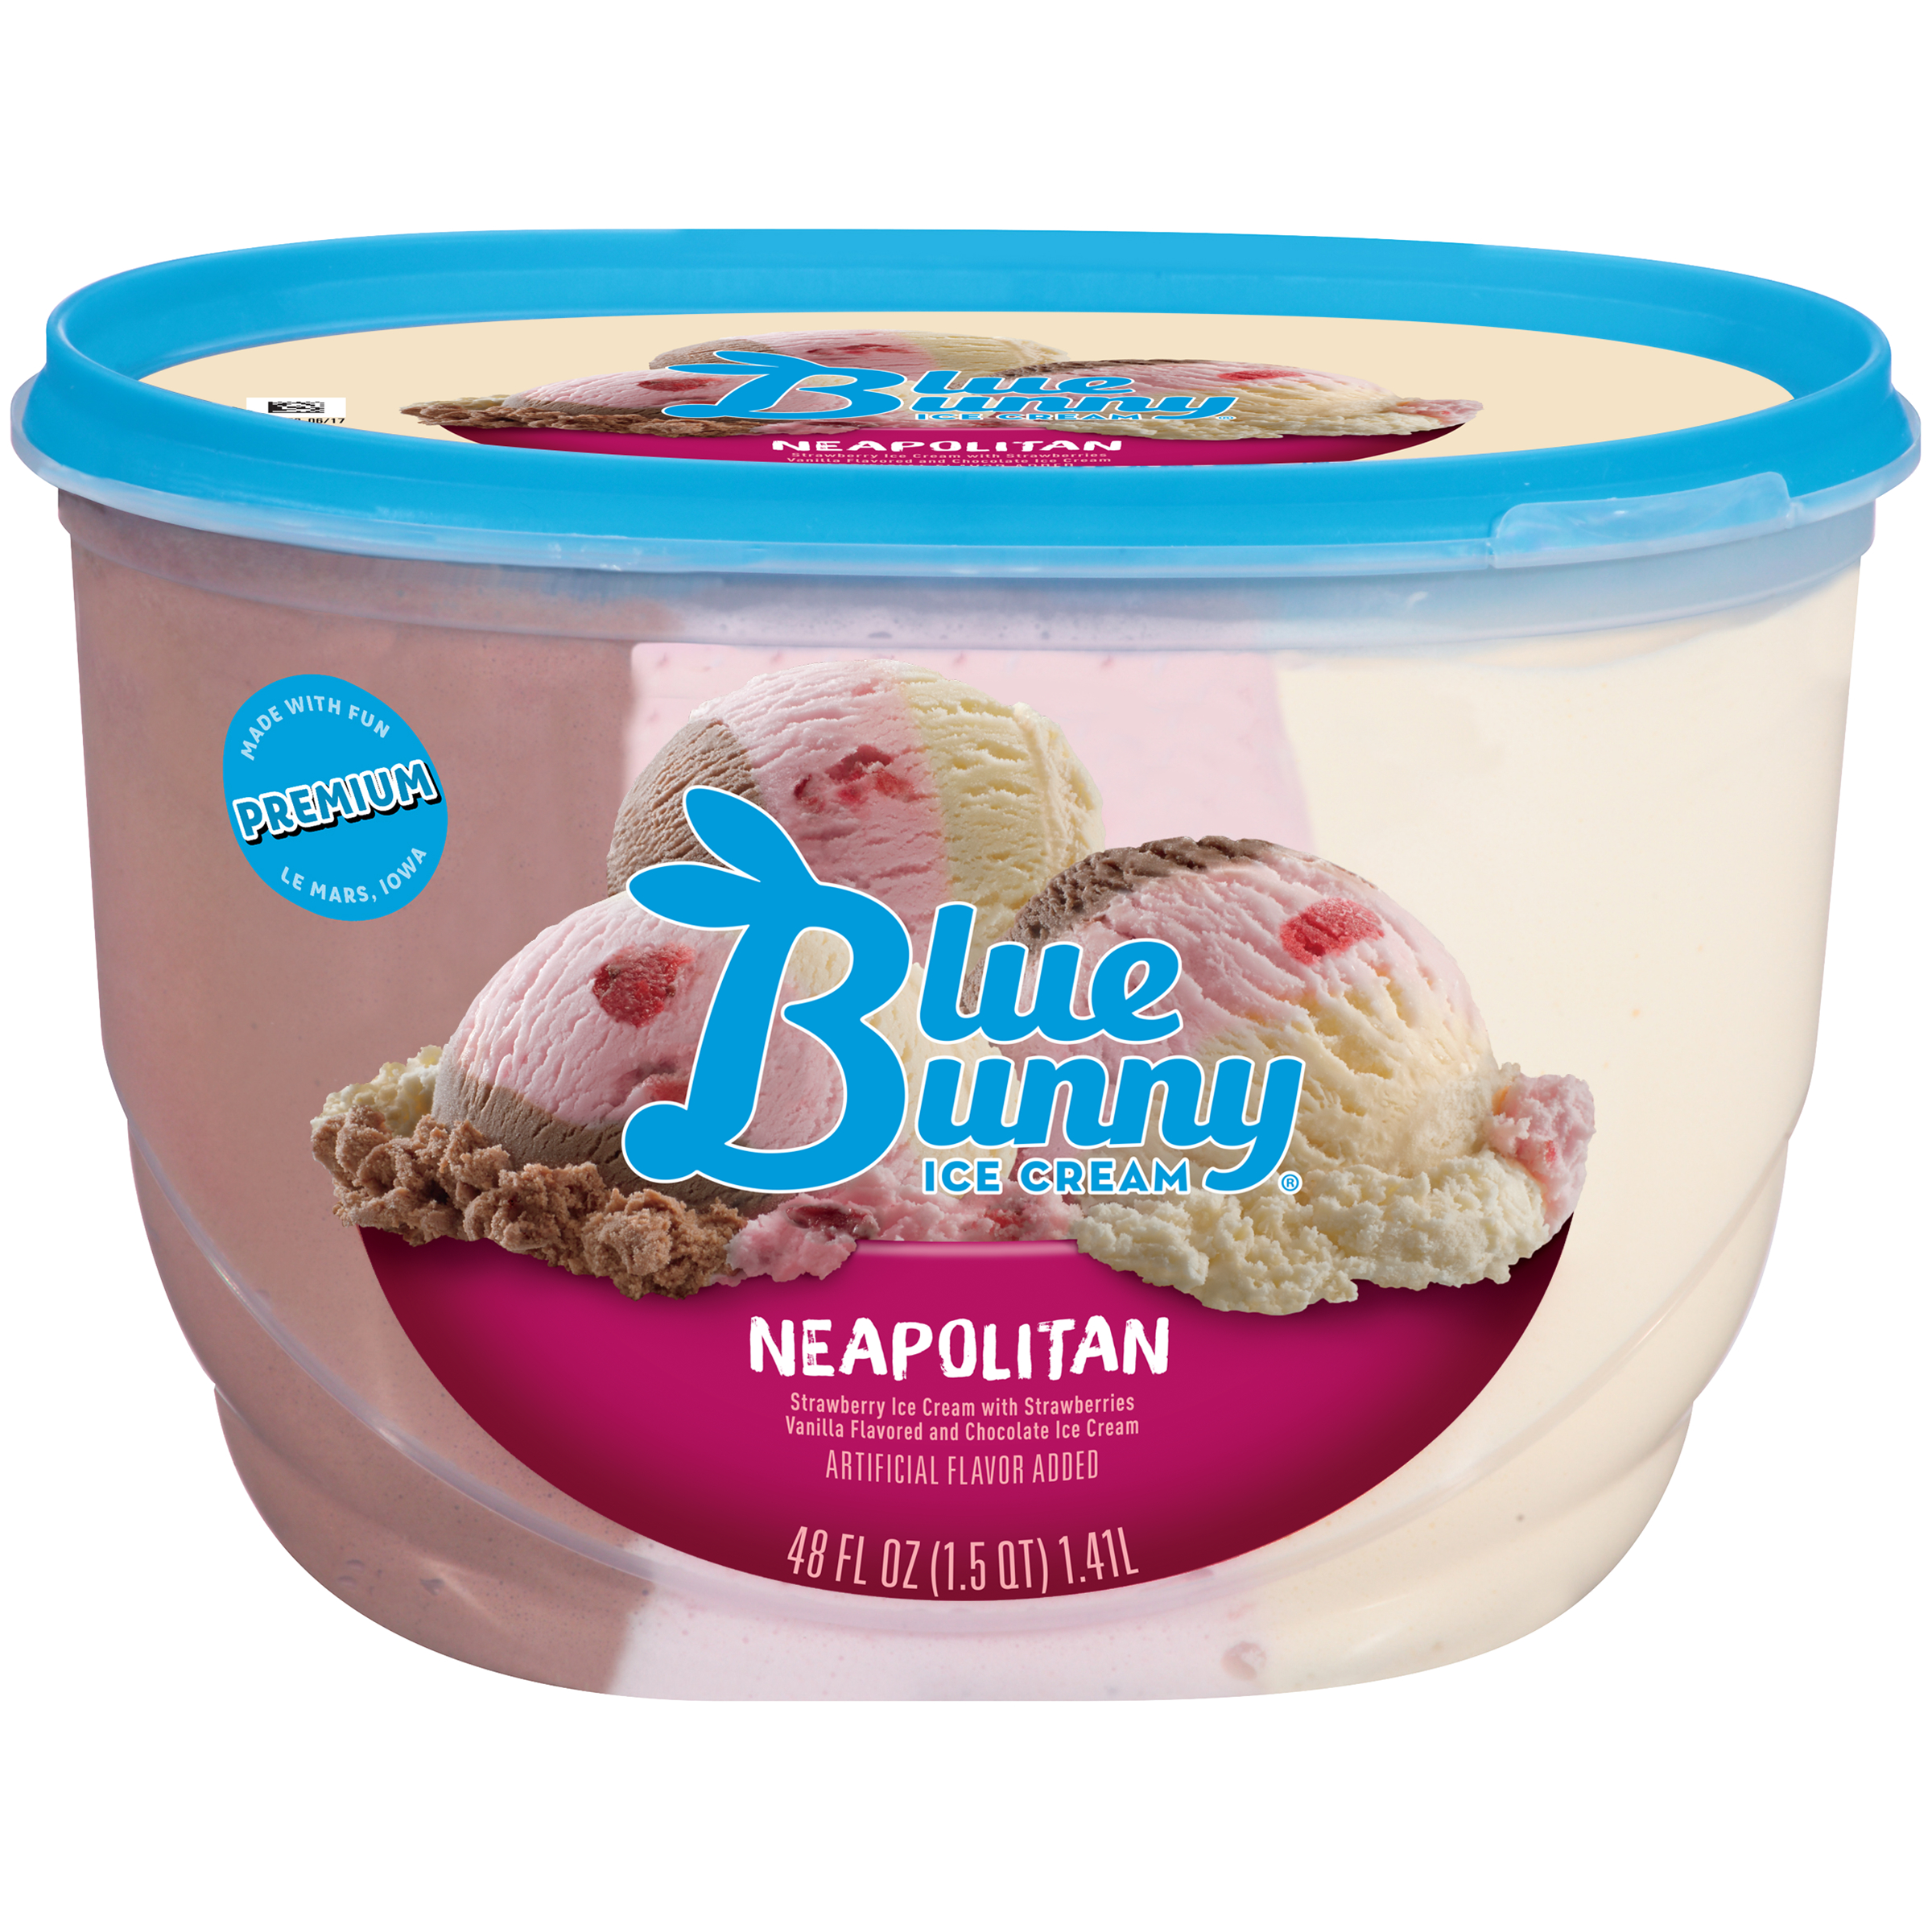 Blue Bunny Neapolitan Ice Cream, 48 fl oz